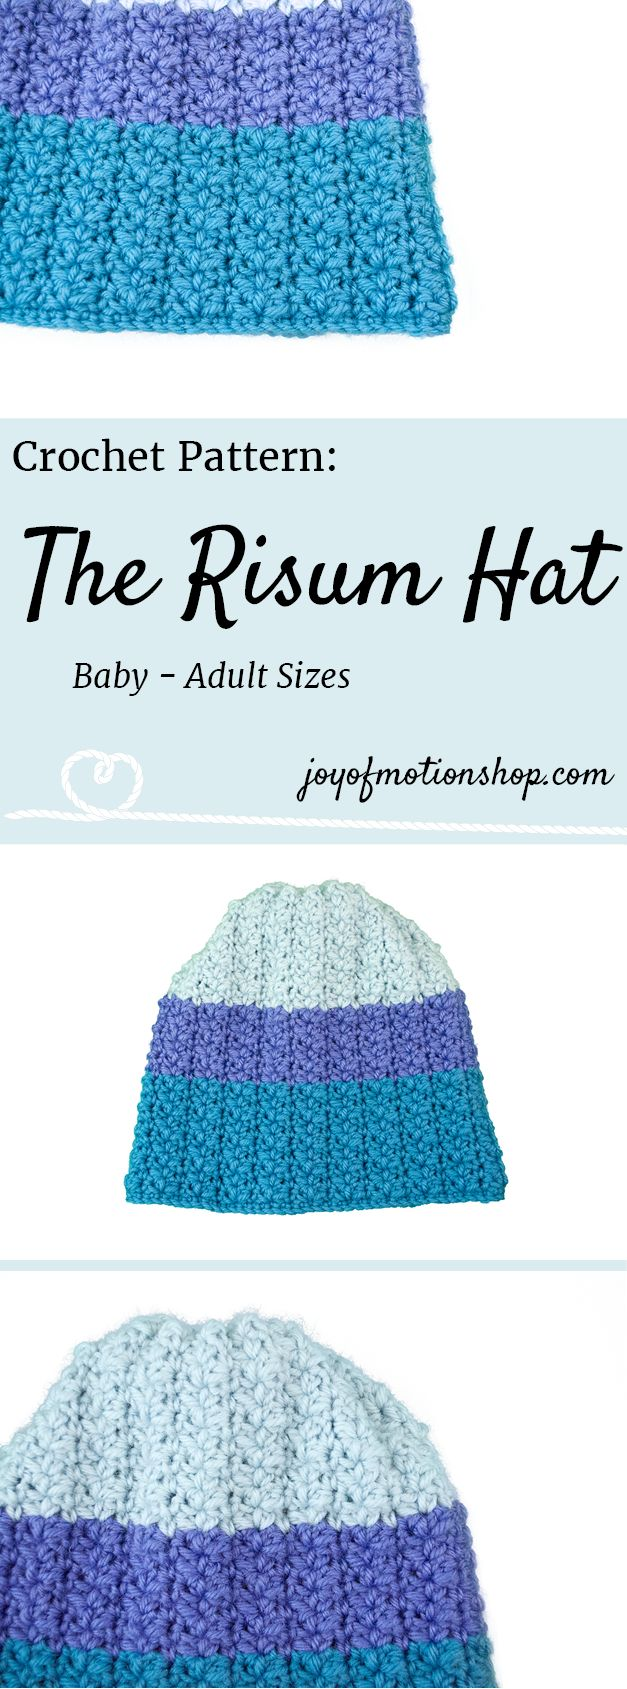 159 best cro hooking images on pinterest knitwear bebe and risum hat crochet pattern bankloansurffo Images